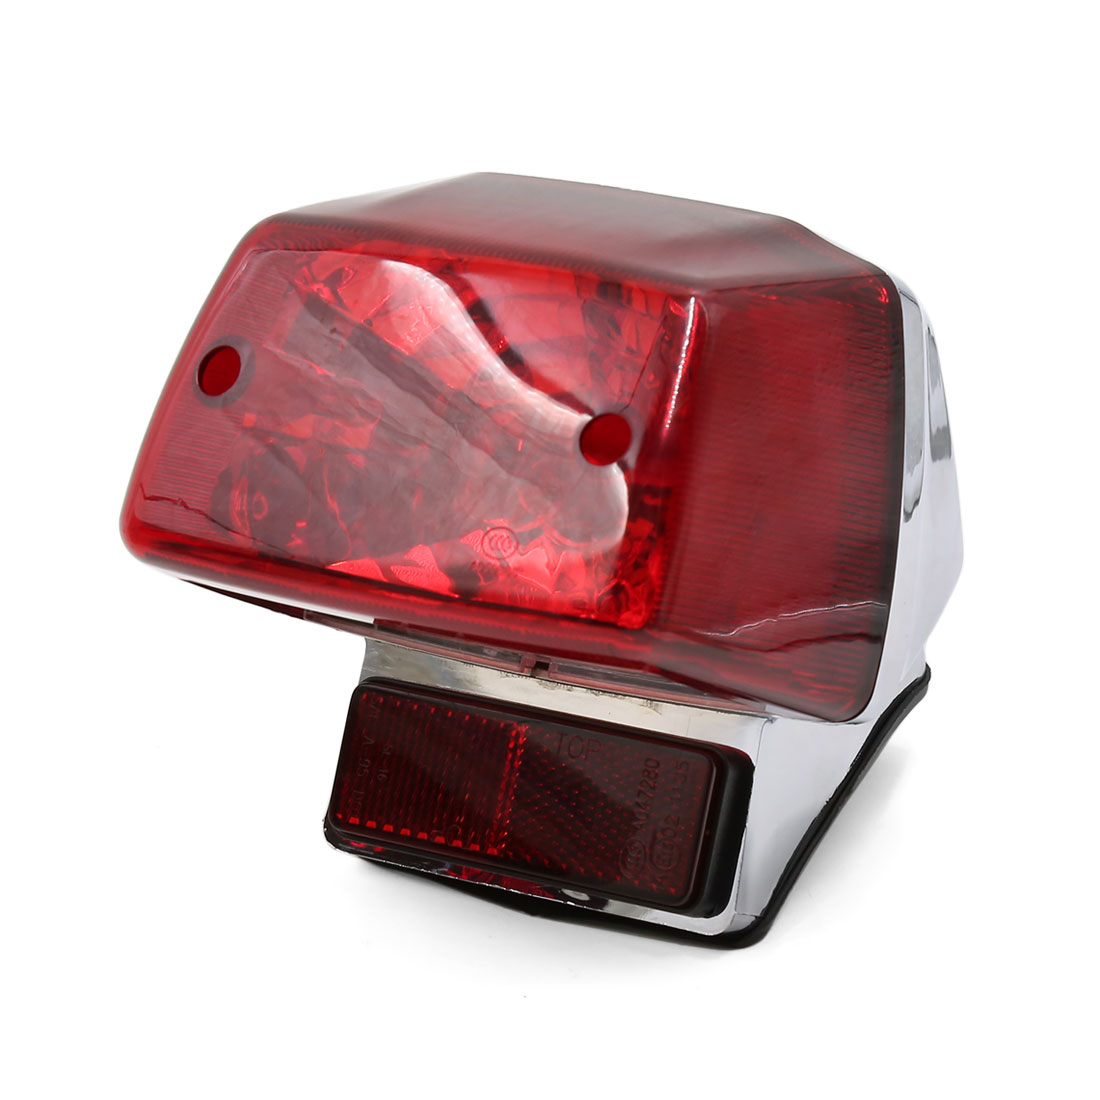 Red Integrated Lamp Turn Signal License Plate Tail Light for Prince Motorcycle